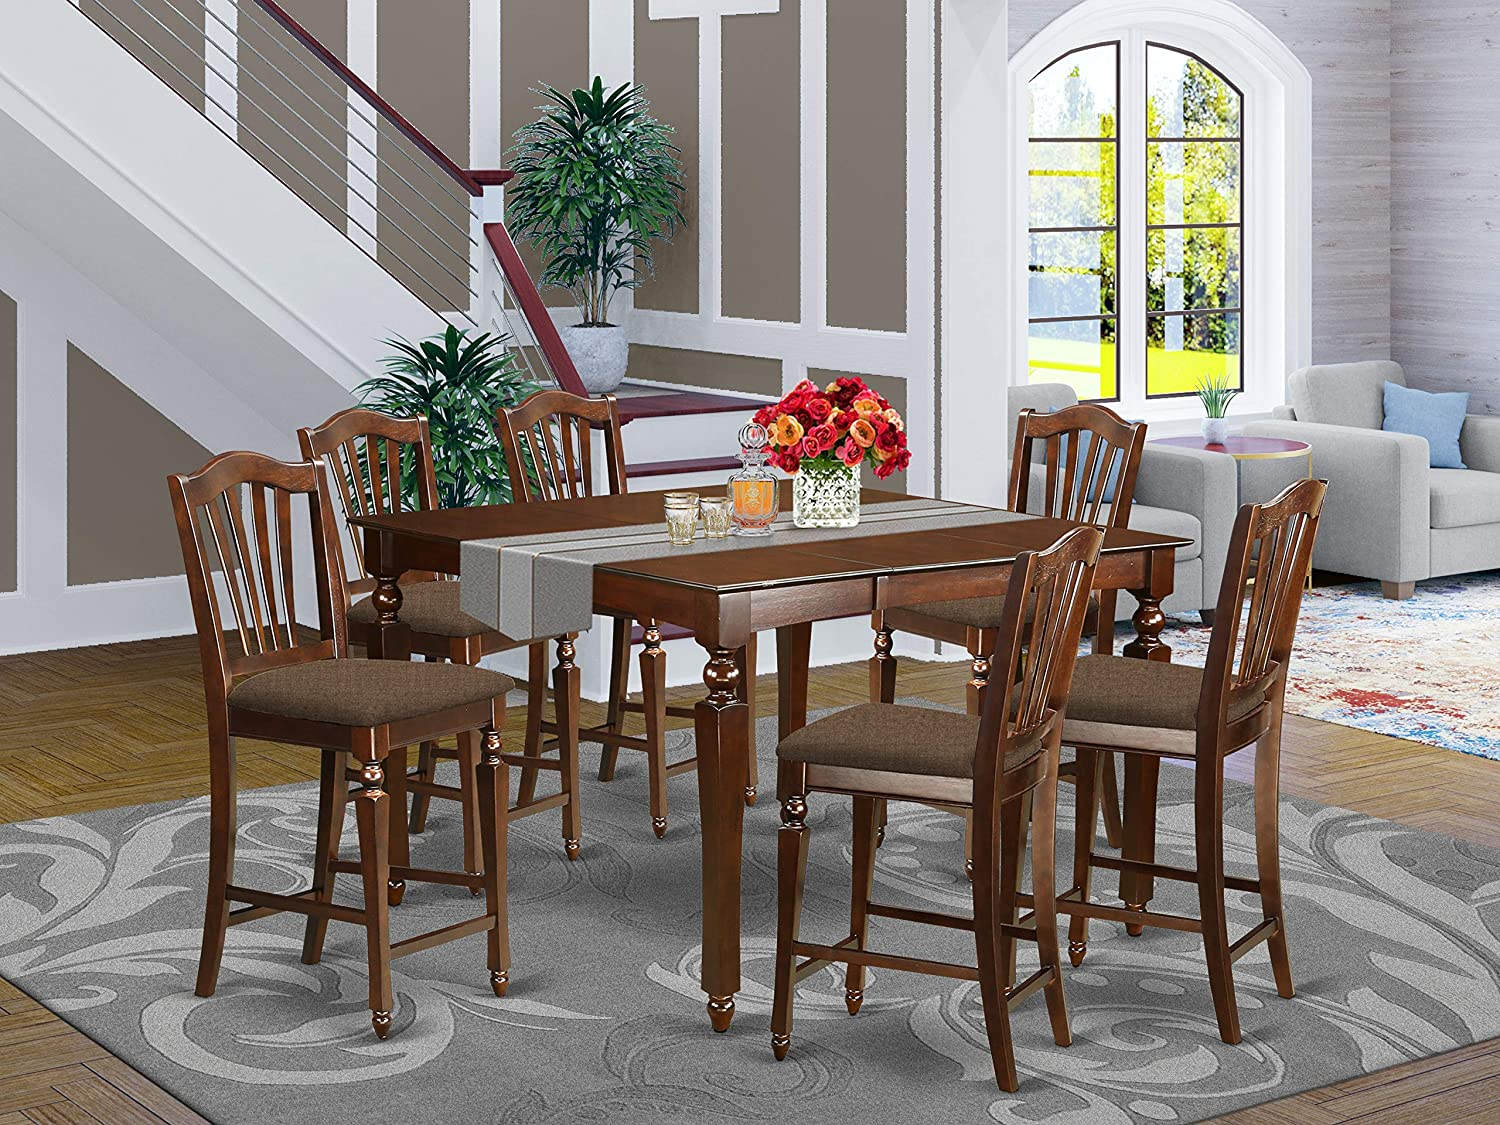 East West Furniture CHEL7-MAH-C Pub Square Counter Height 6 Stools Set 7 Pc-Linen Fabric Wood Kitchen Chairs Seat-Mahogany Finish Dining Room Table and Body